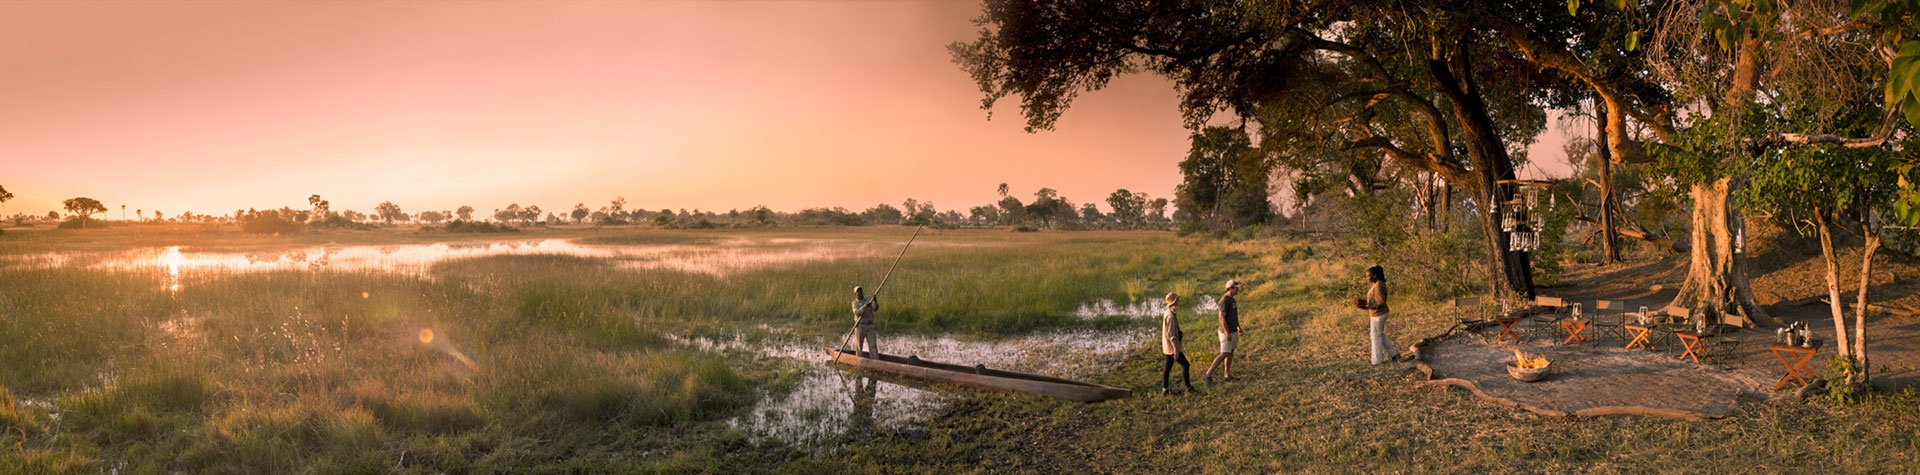 Botswana photo expedition copyright AndBeyond travel